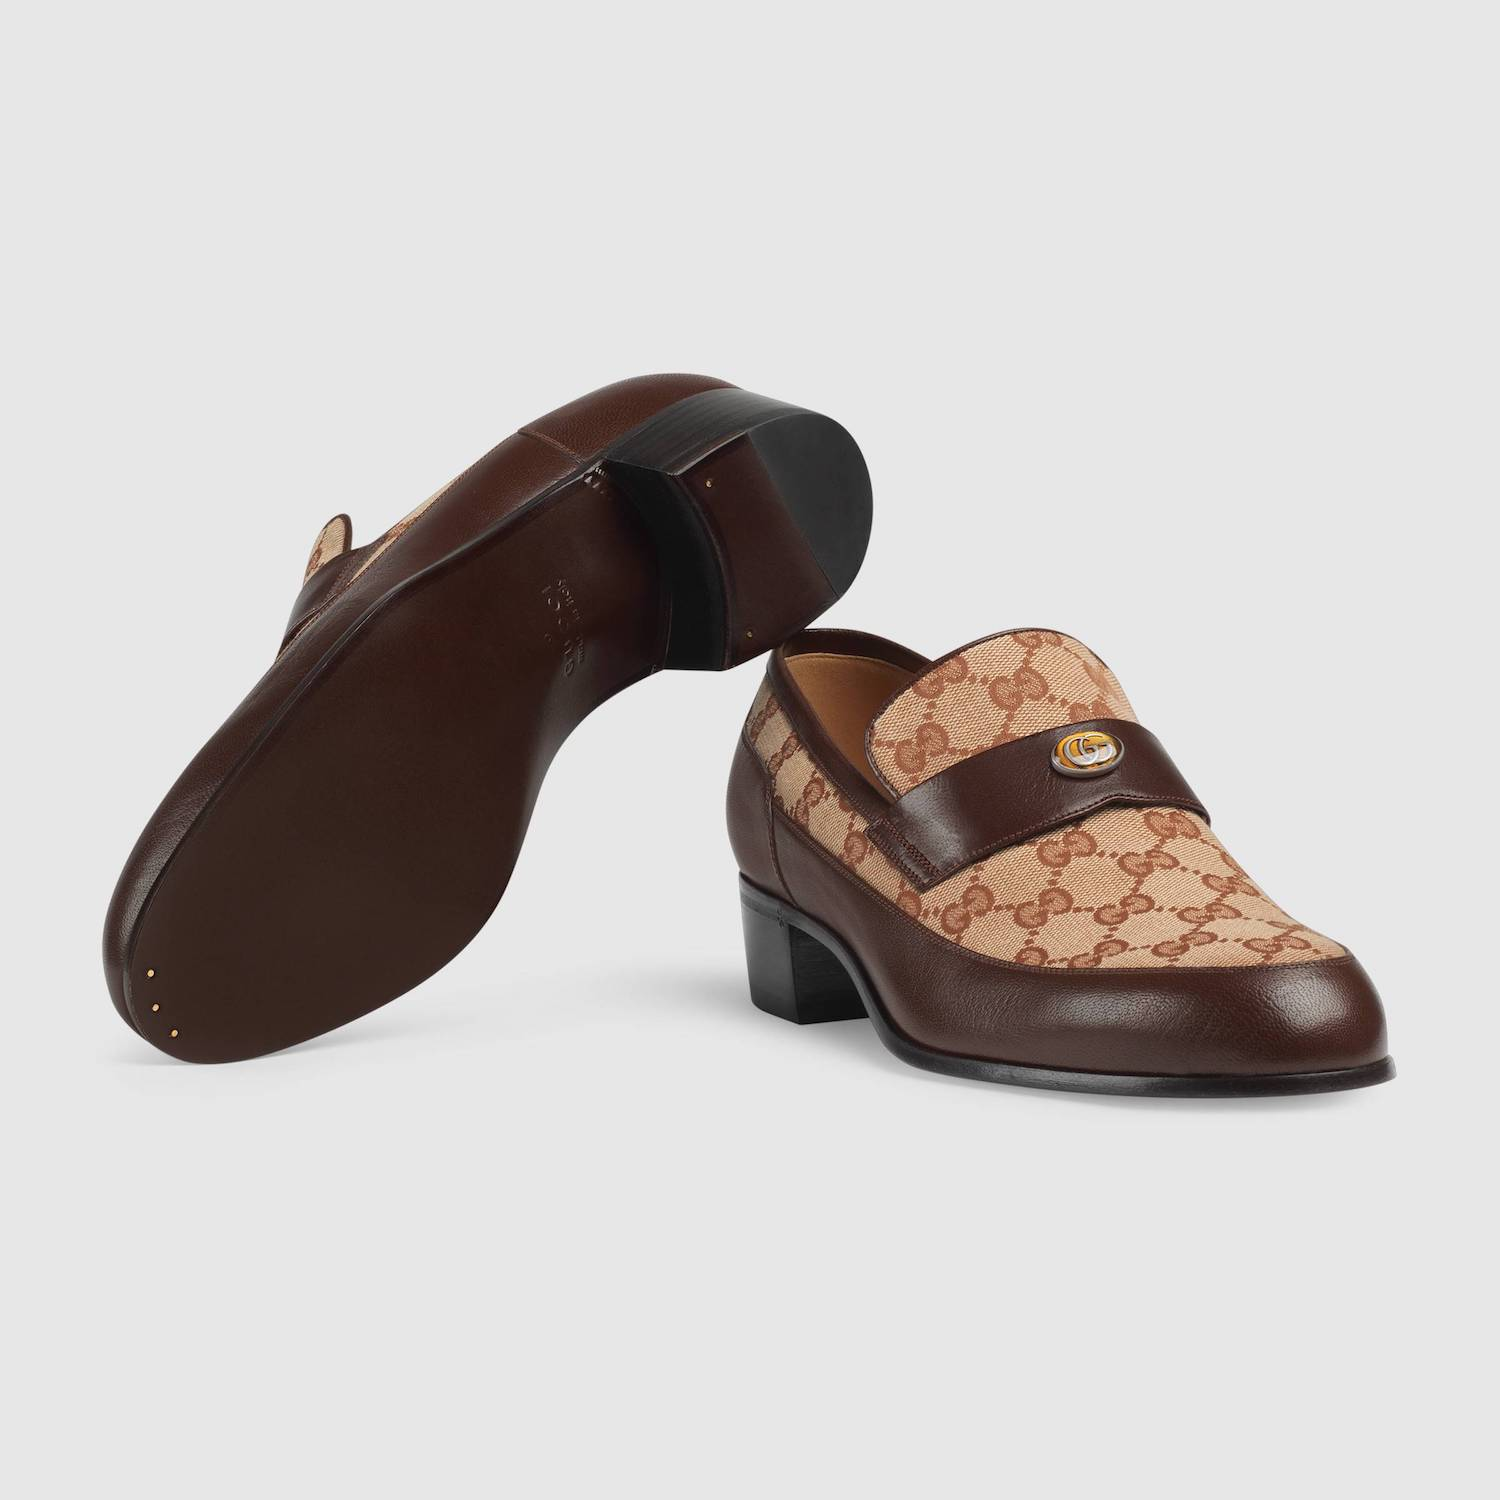 New In: Gucci Team Motif Loafer